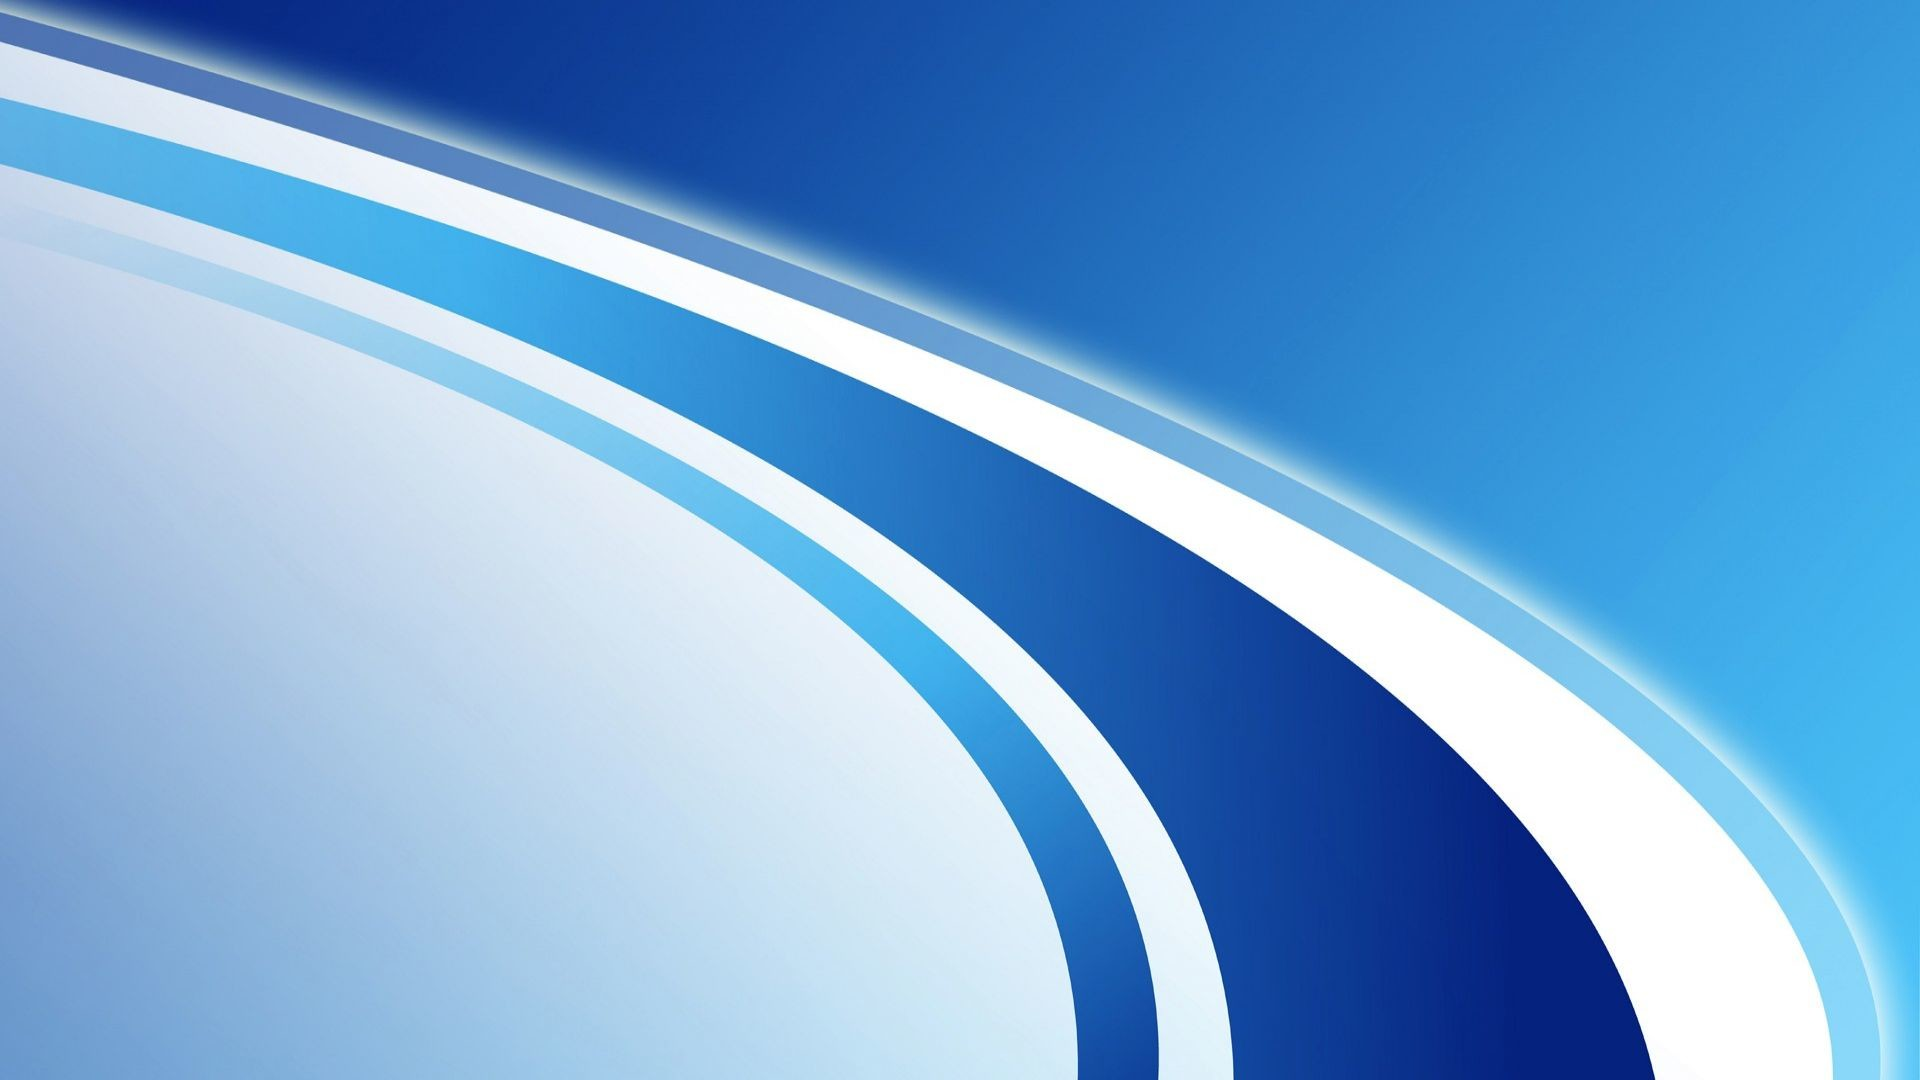 Abstract Backgrounds Blue 2328 Hd Wallpapers in Abstract – Imagesci .